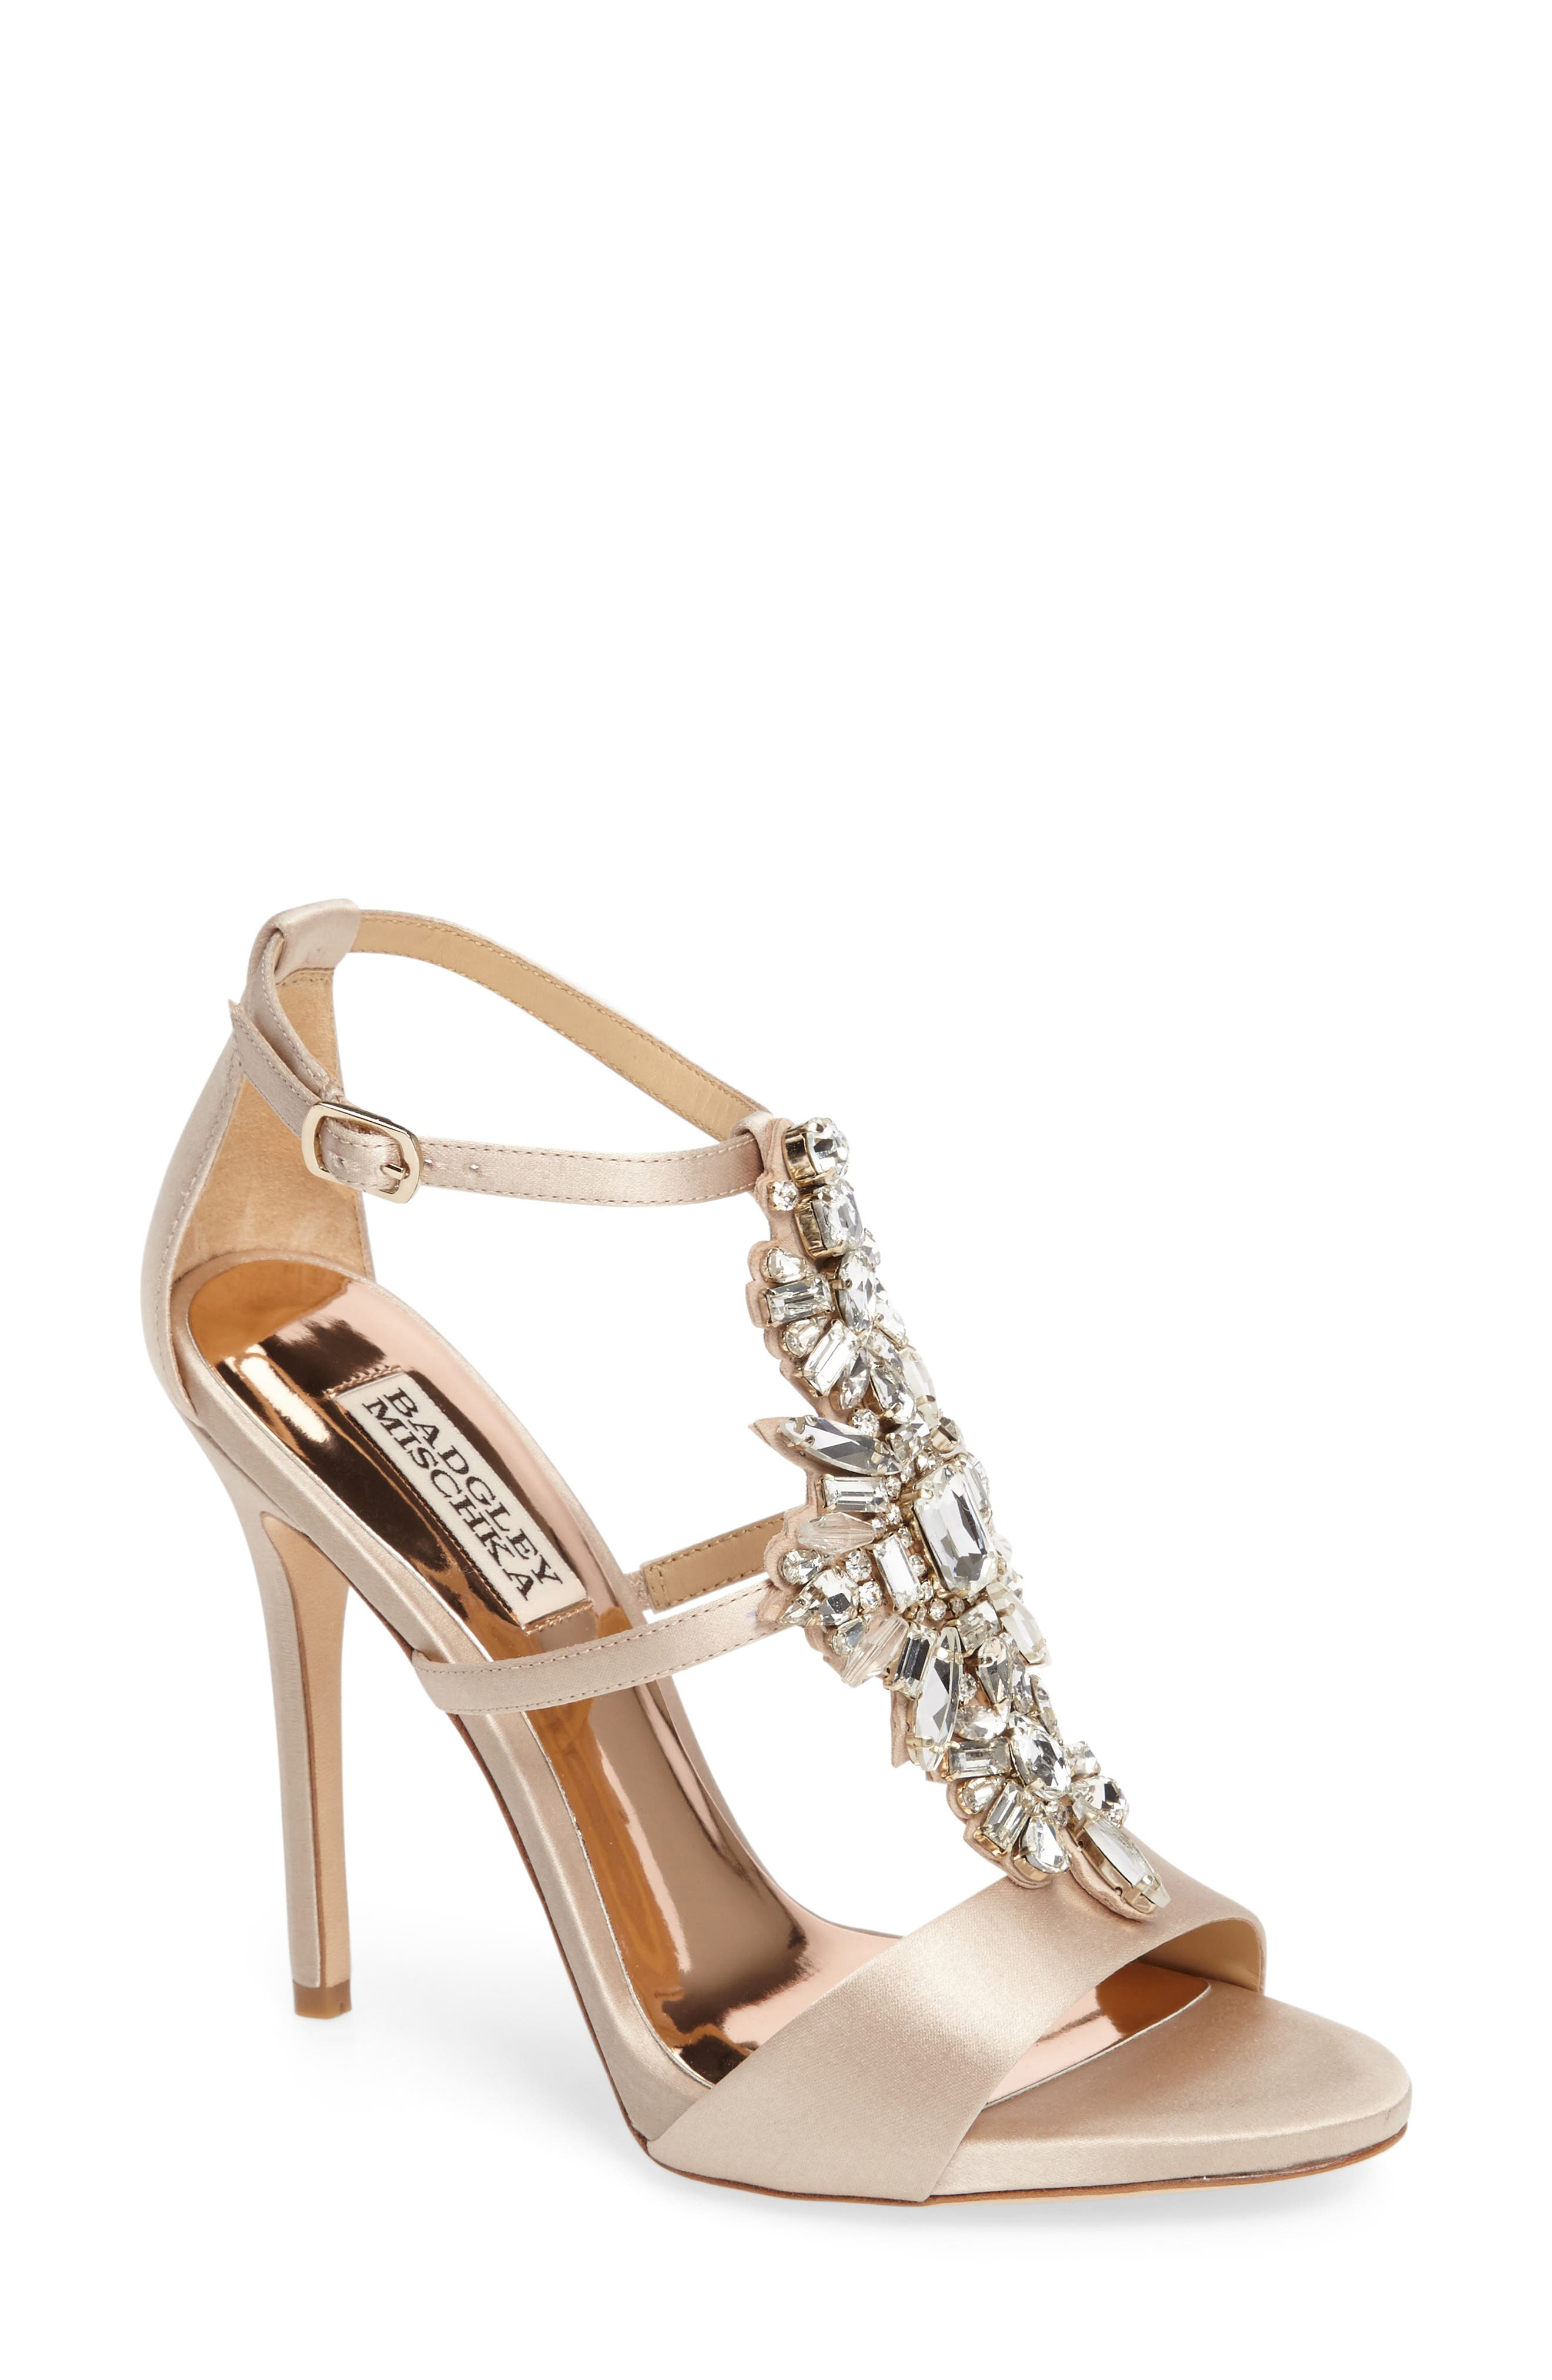 Badgley Mischka Basile Crystal Embellished Sandal,                         Main,                         color, 250